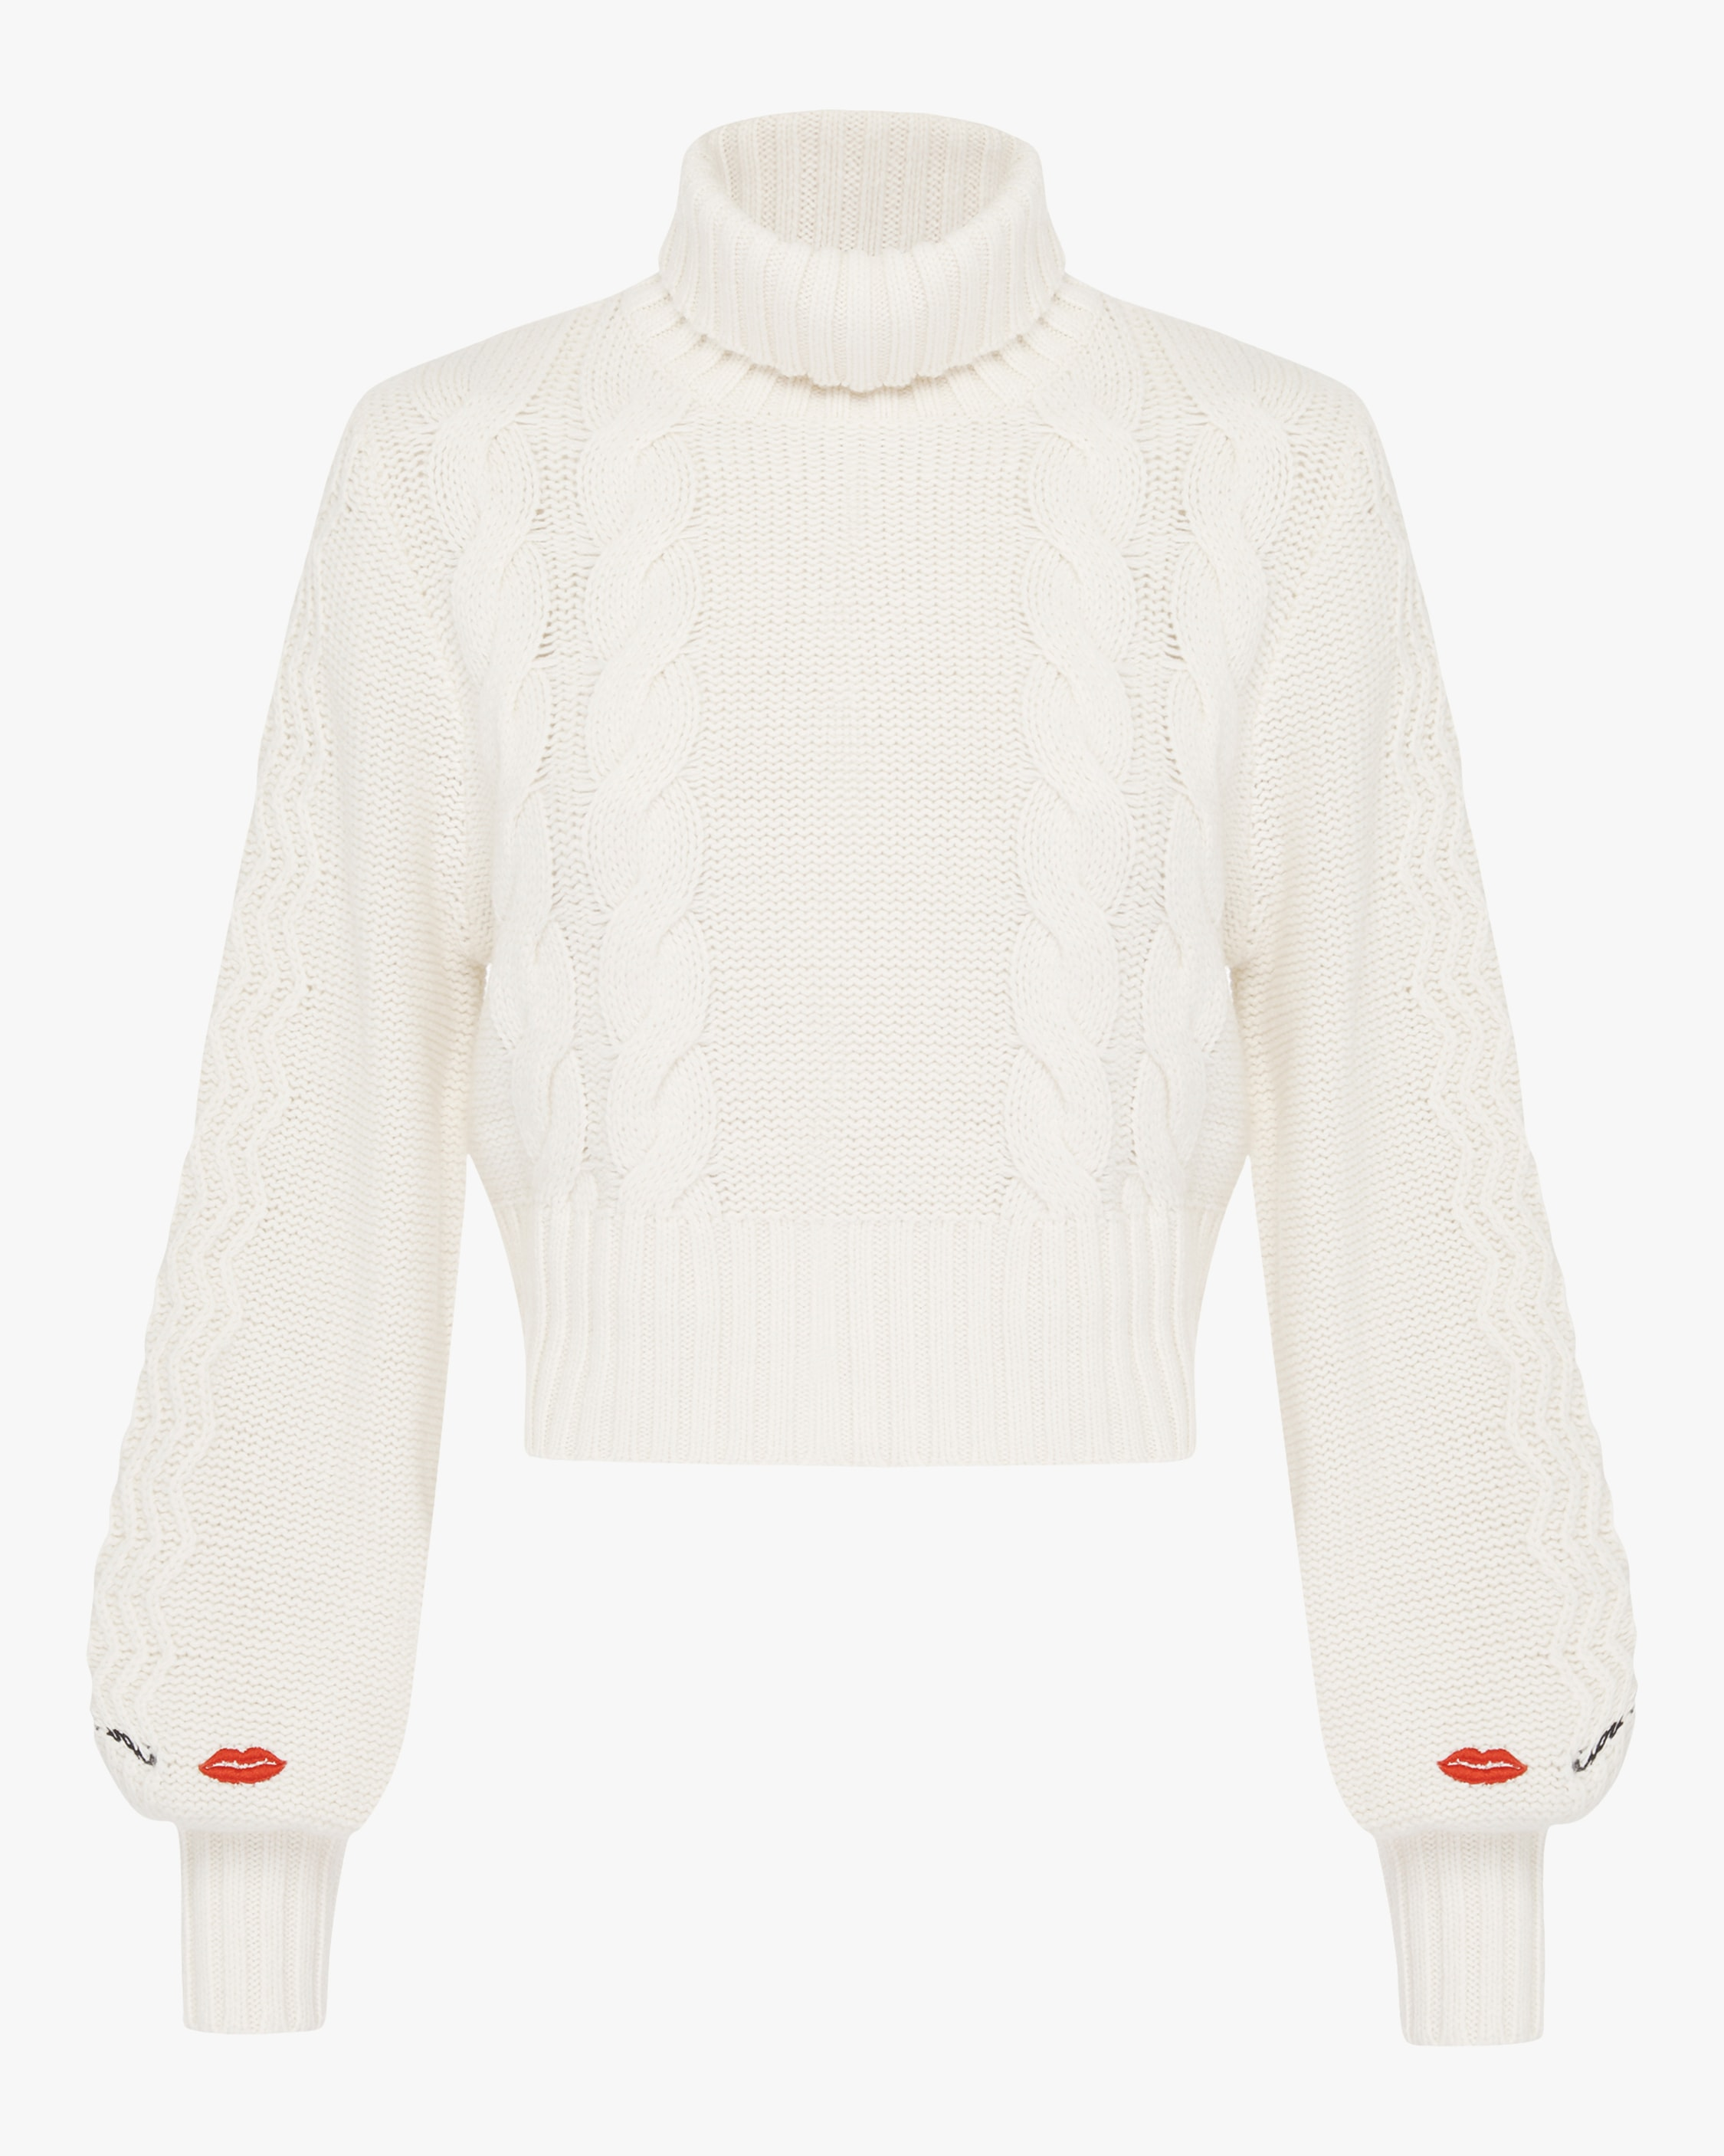 Alice Mccall CONSTANCE KNIT TOP